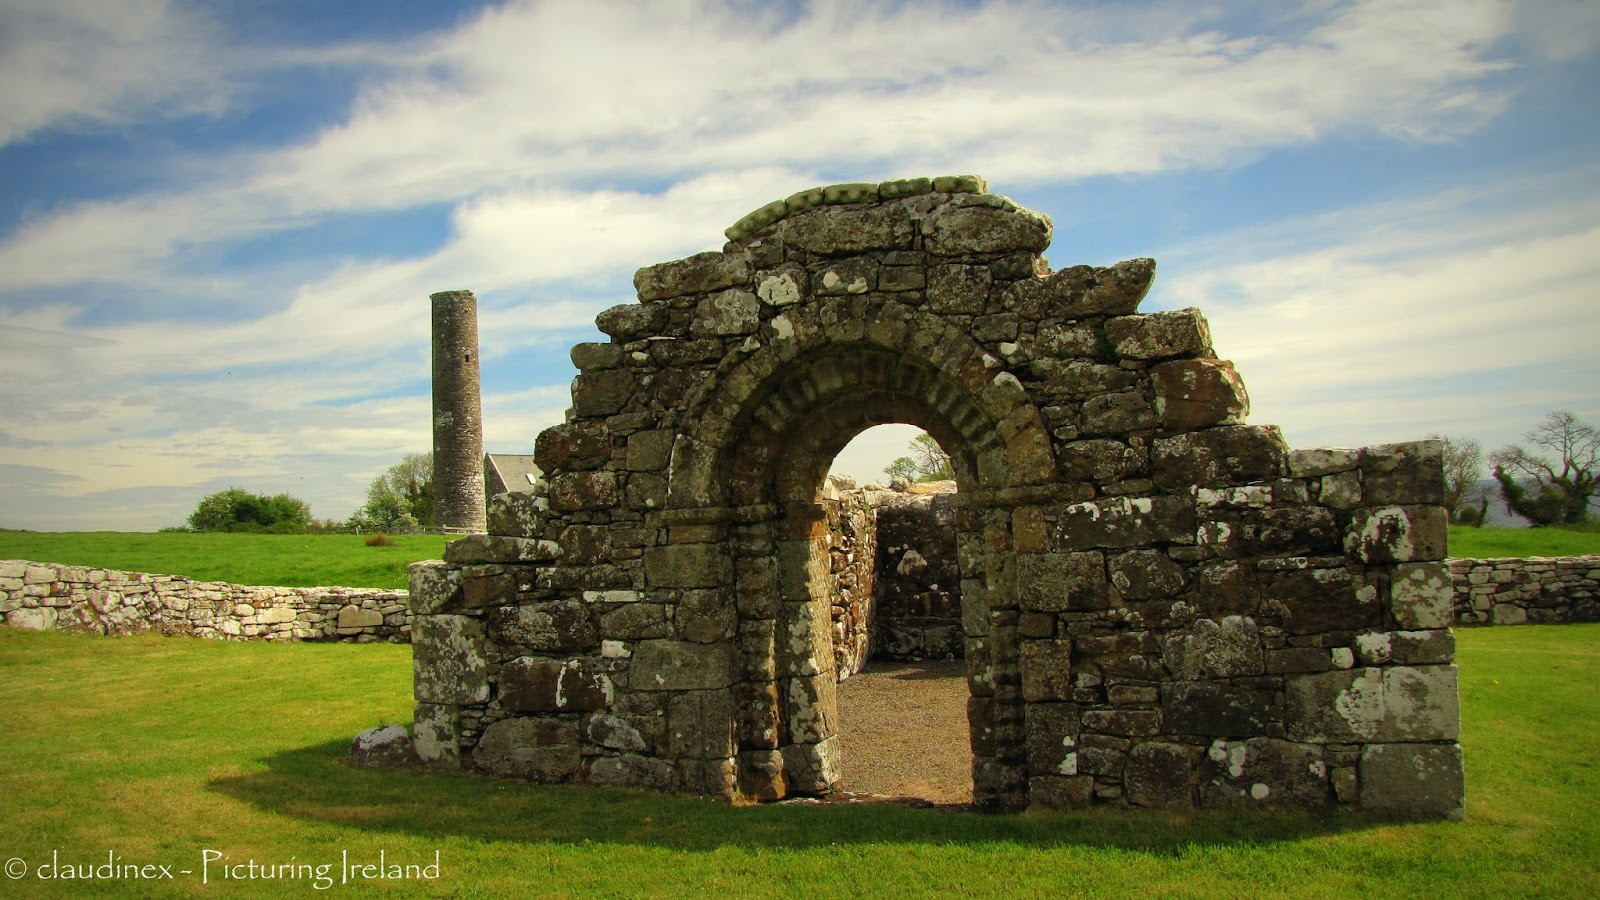 Visit Pagan Dating Ireland To Find Your Dream Date